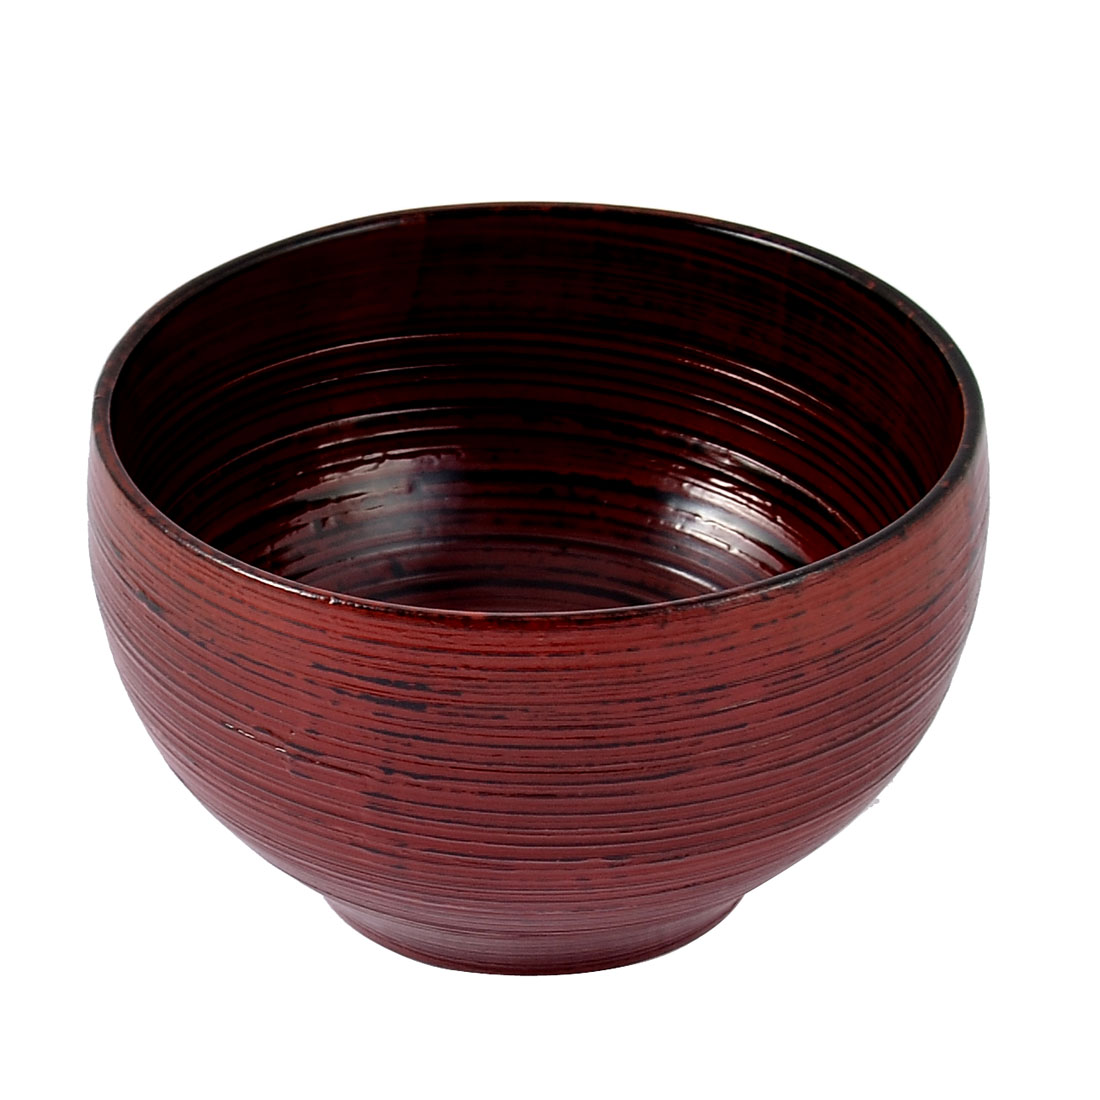 Home Kitchen Wooden Dinging Tool Soup Rice Bowl Red Black 11cm x 6.5cm